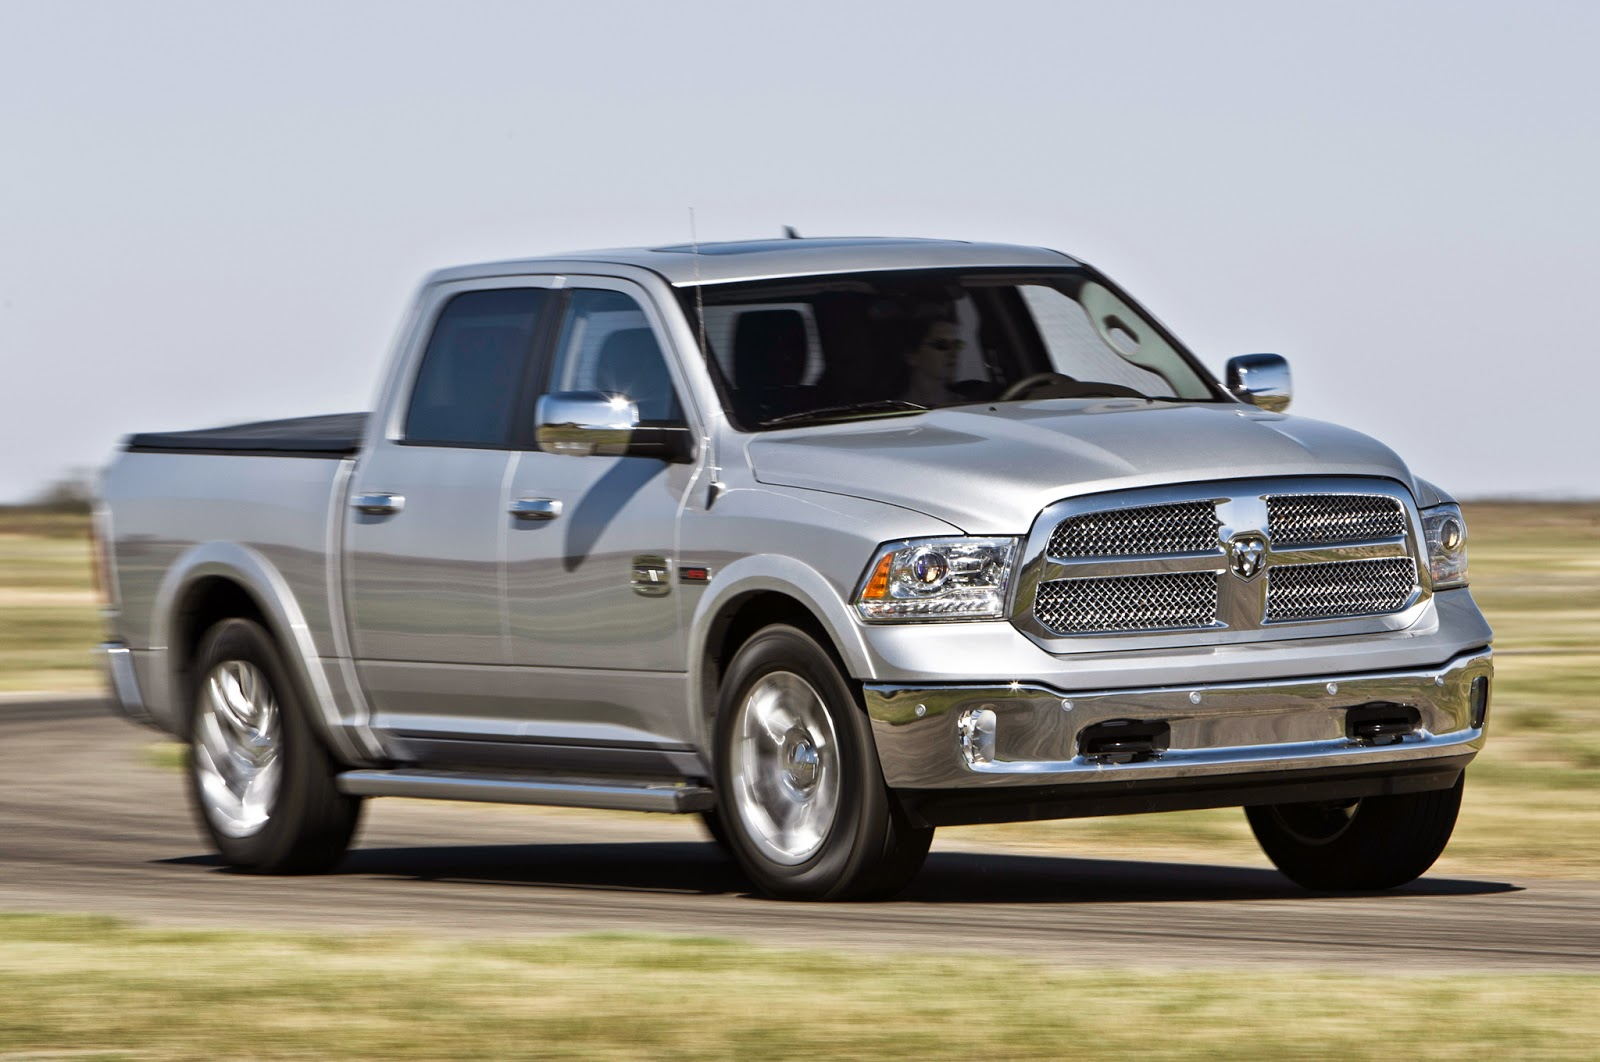 Landmark Dodge Chrysler Jeep Ram: Ram 1500 EcoDiesel Named 2015 Green Truck of the Year by Green Car Journal